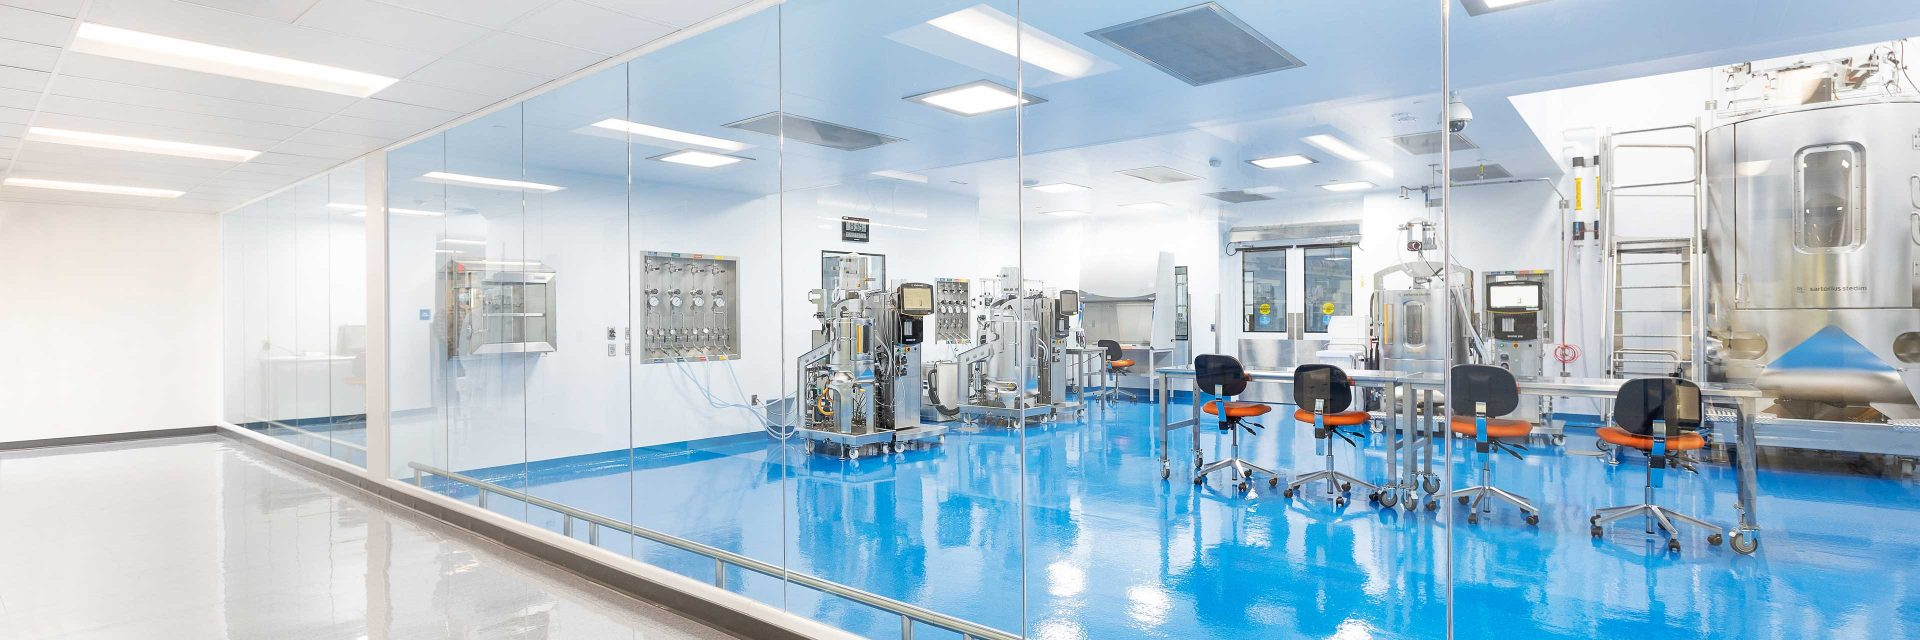 Processing space in Abzena's biopharma facility